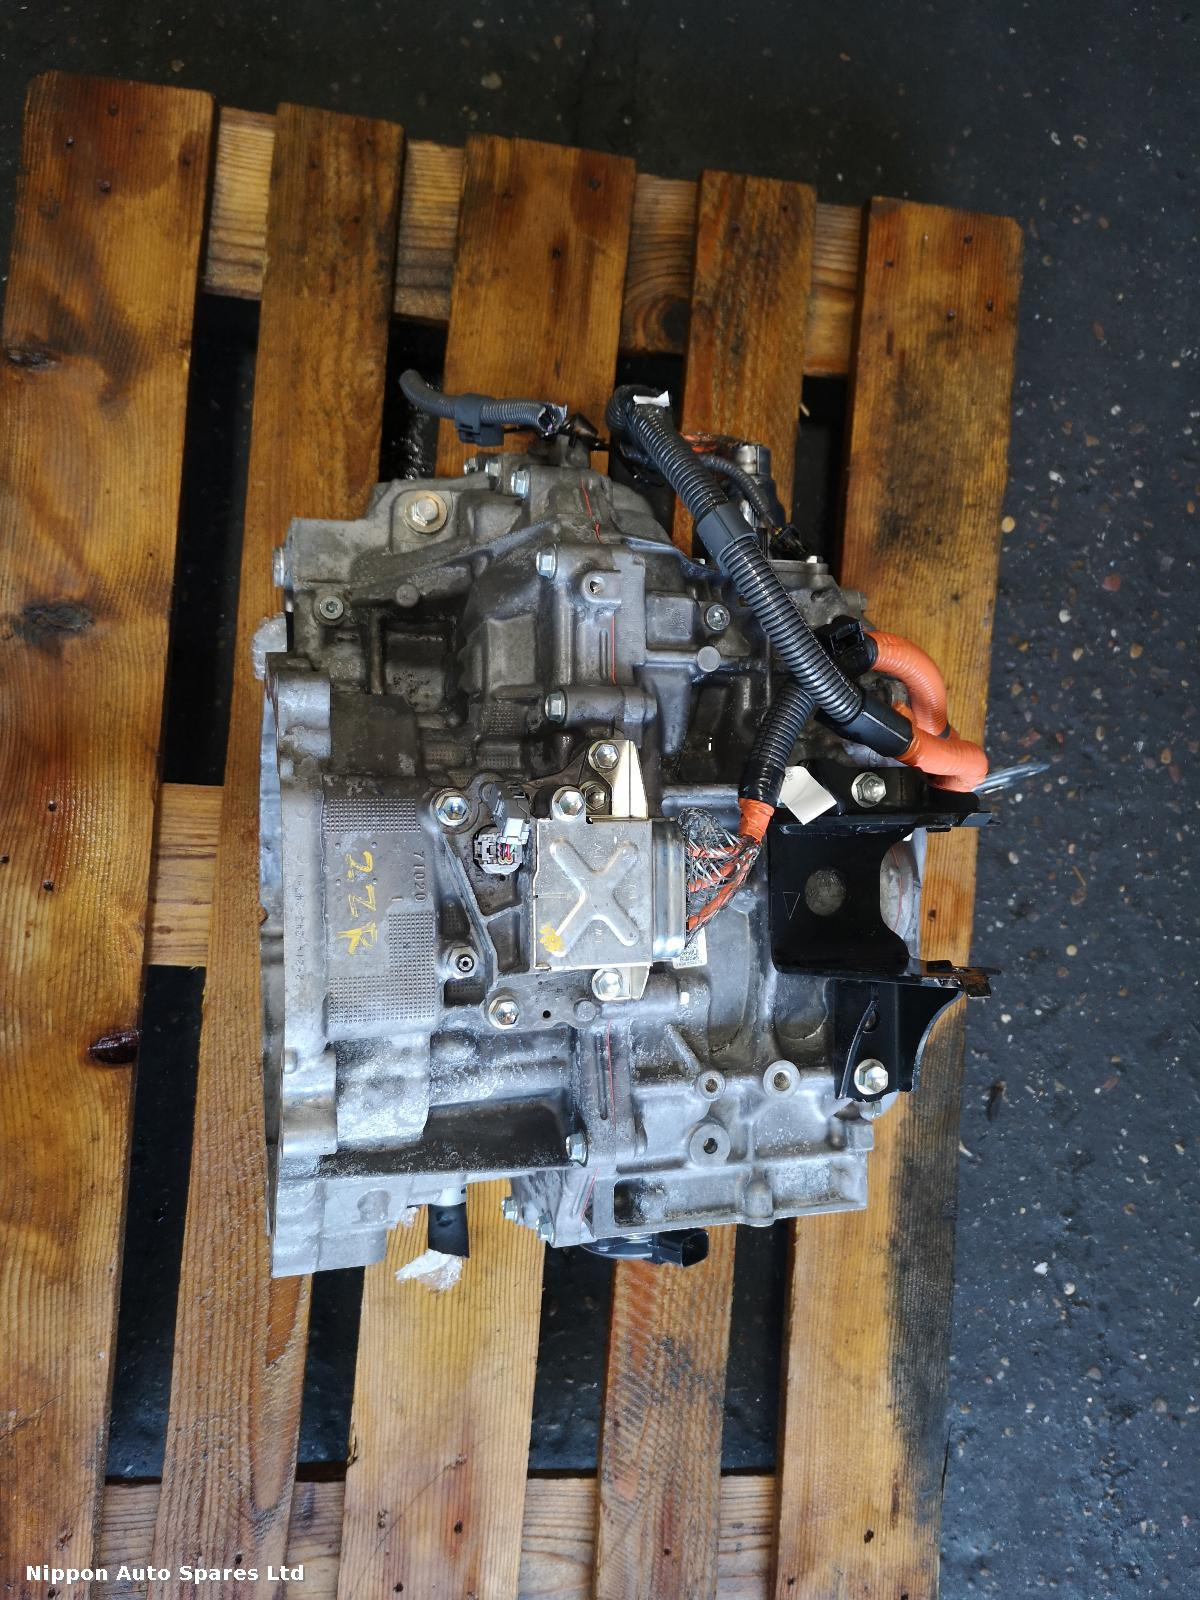 Toyota PRIUS Gearbox : 57043